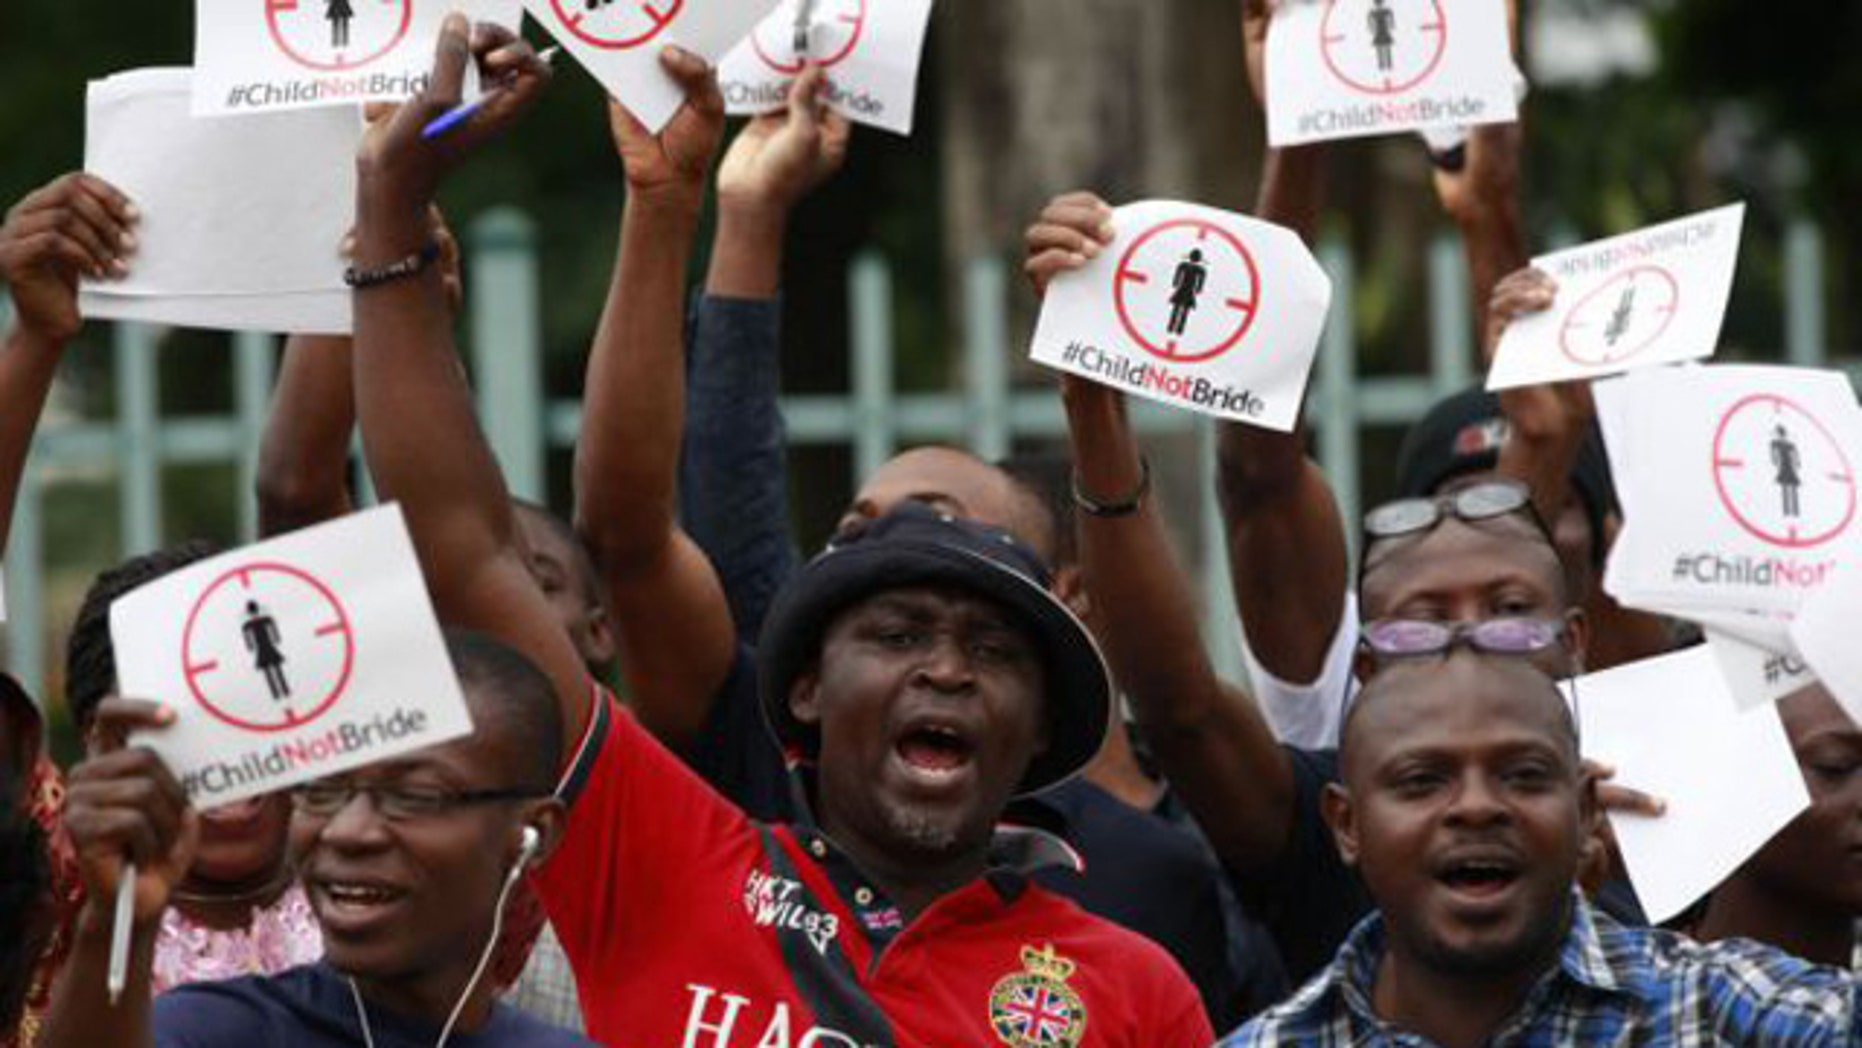 July 20, 2013: People protest against underage marriages in Lagos, Nigeria. (AP/Sunday Alamba, File)